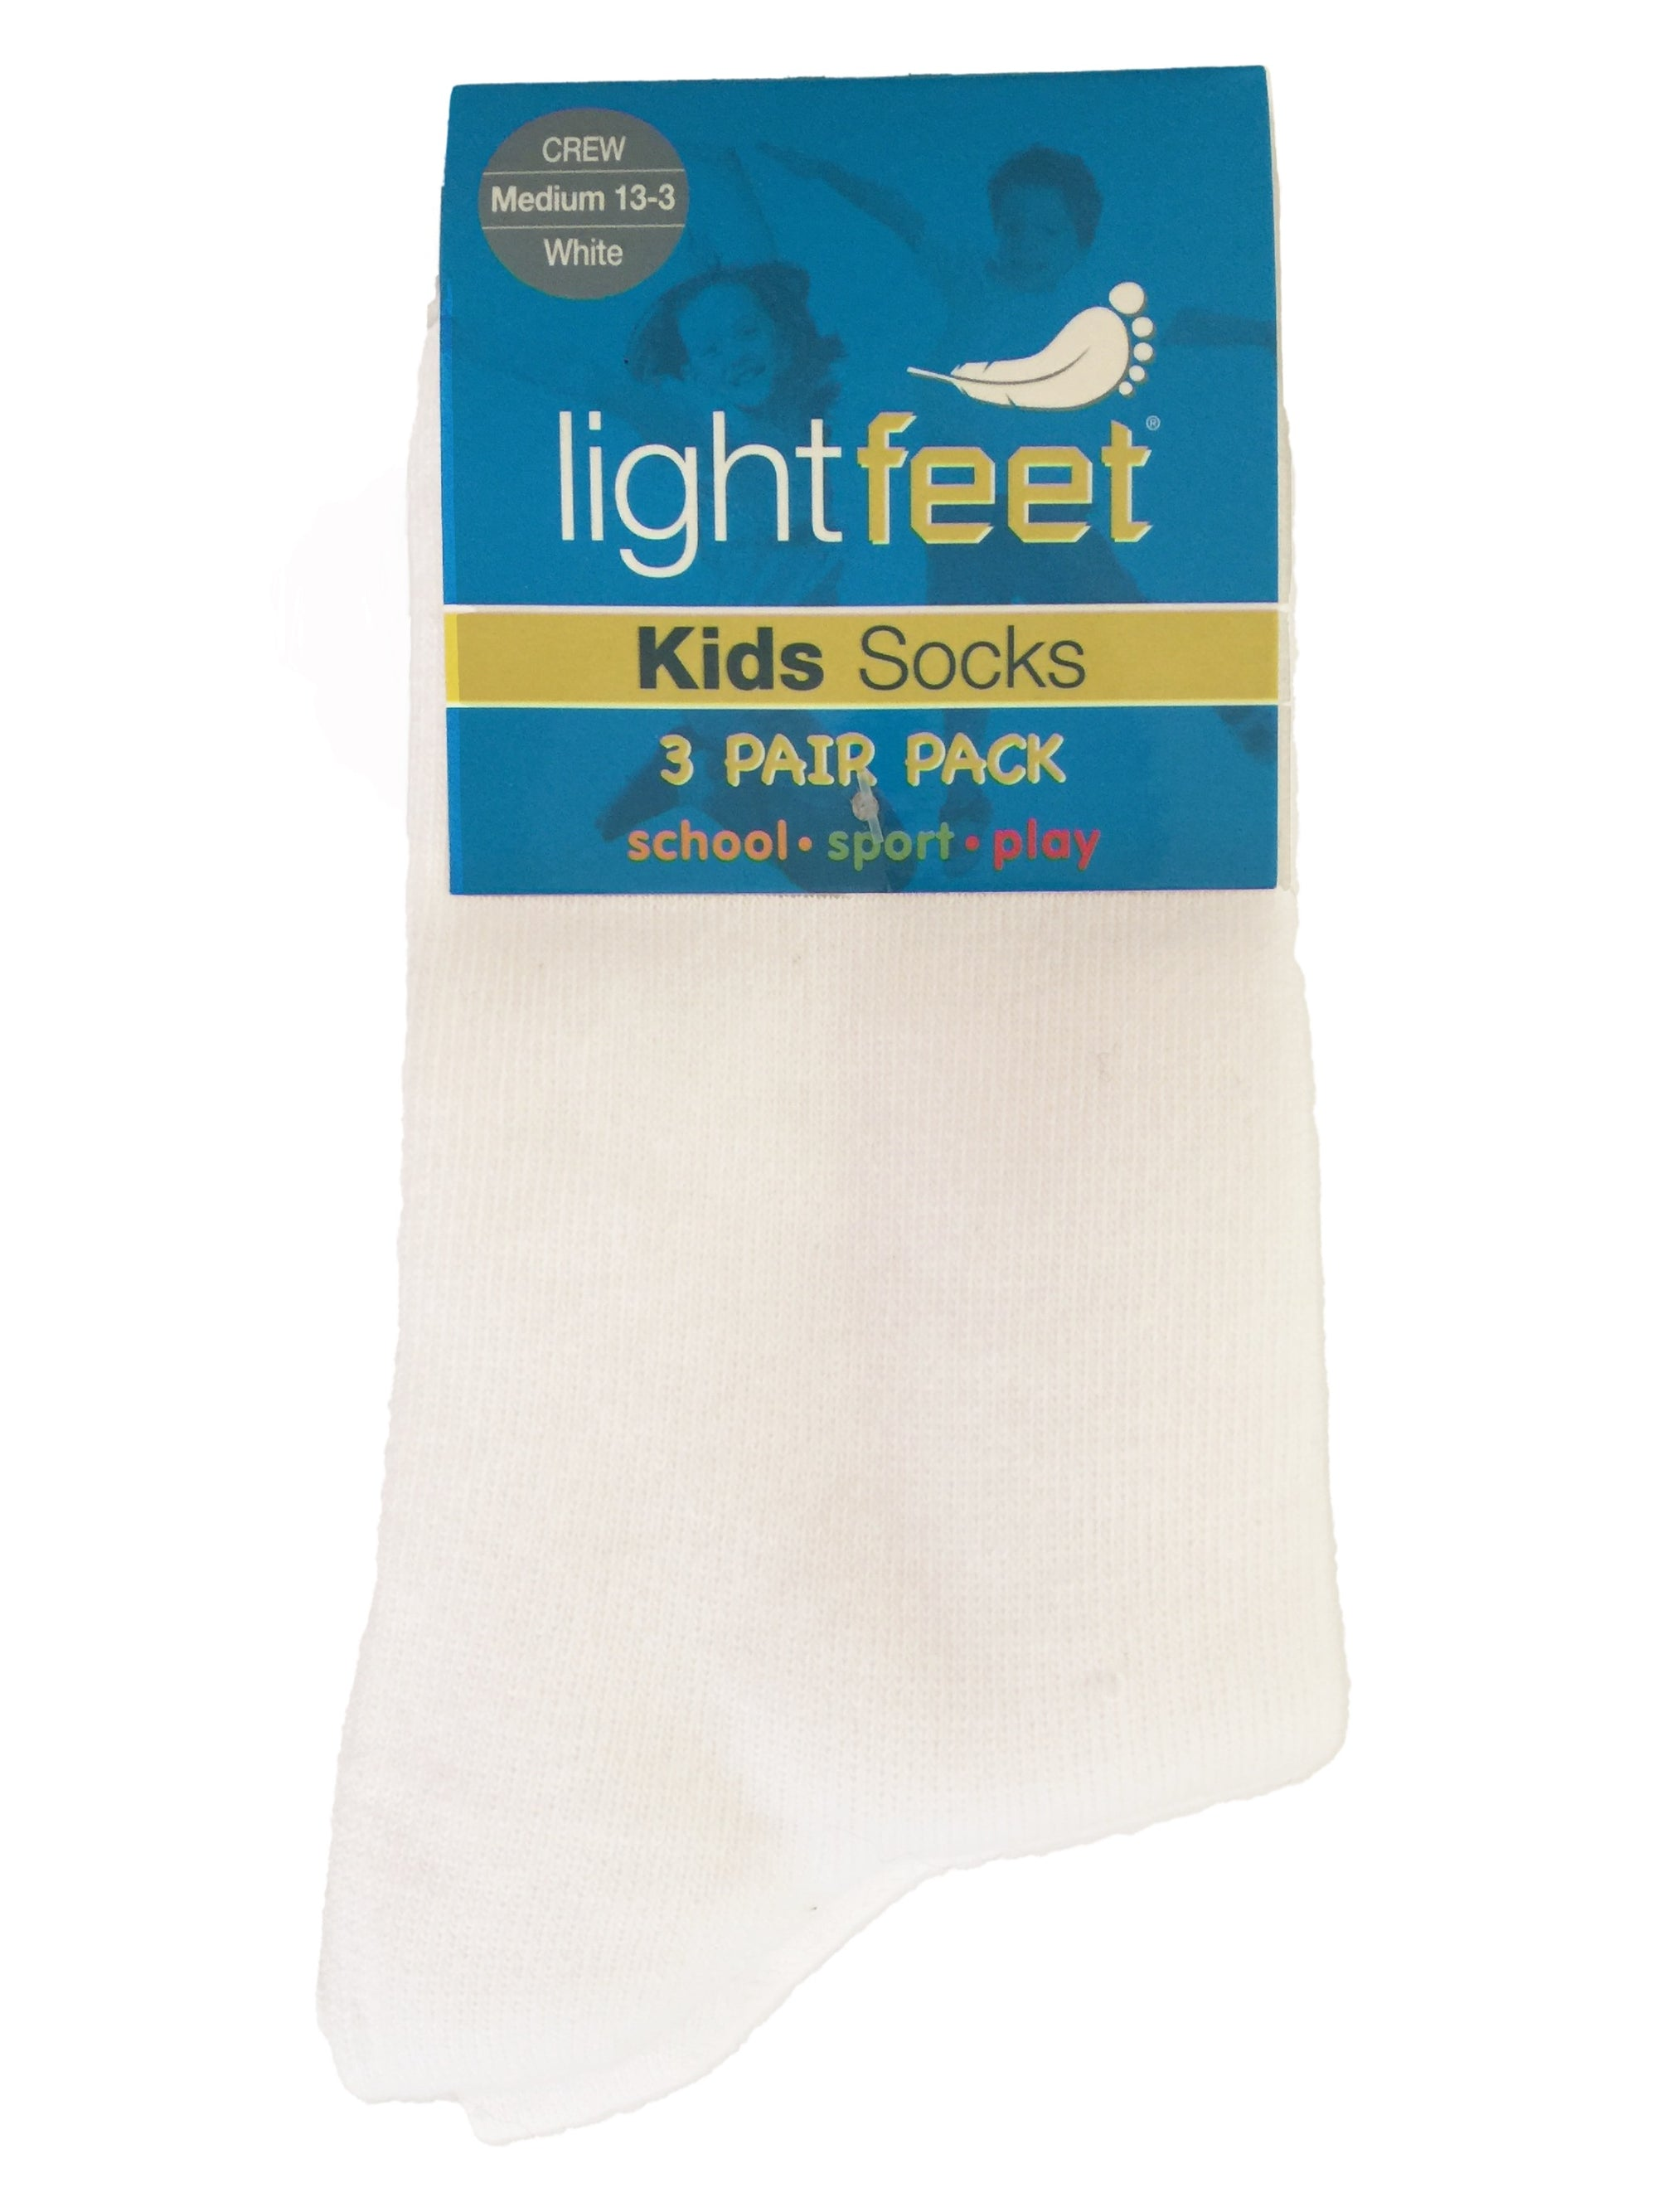 Lightfeet Kids School Socks 3 Pack (Crew) - White